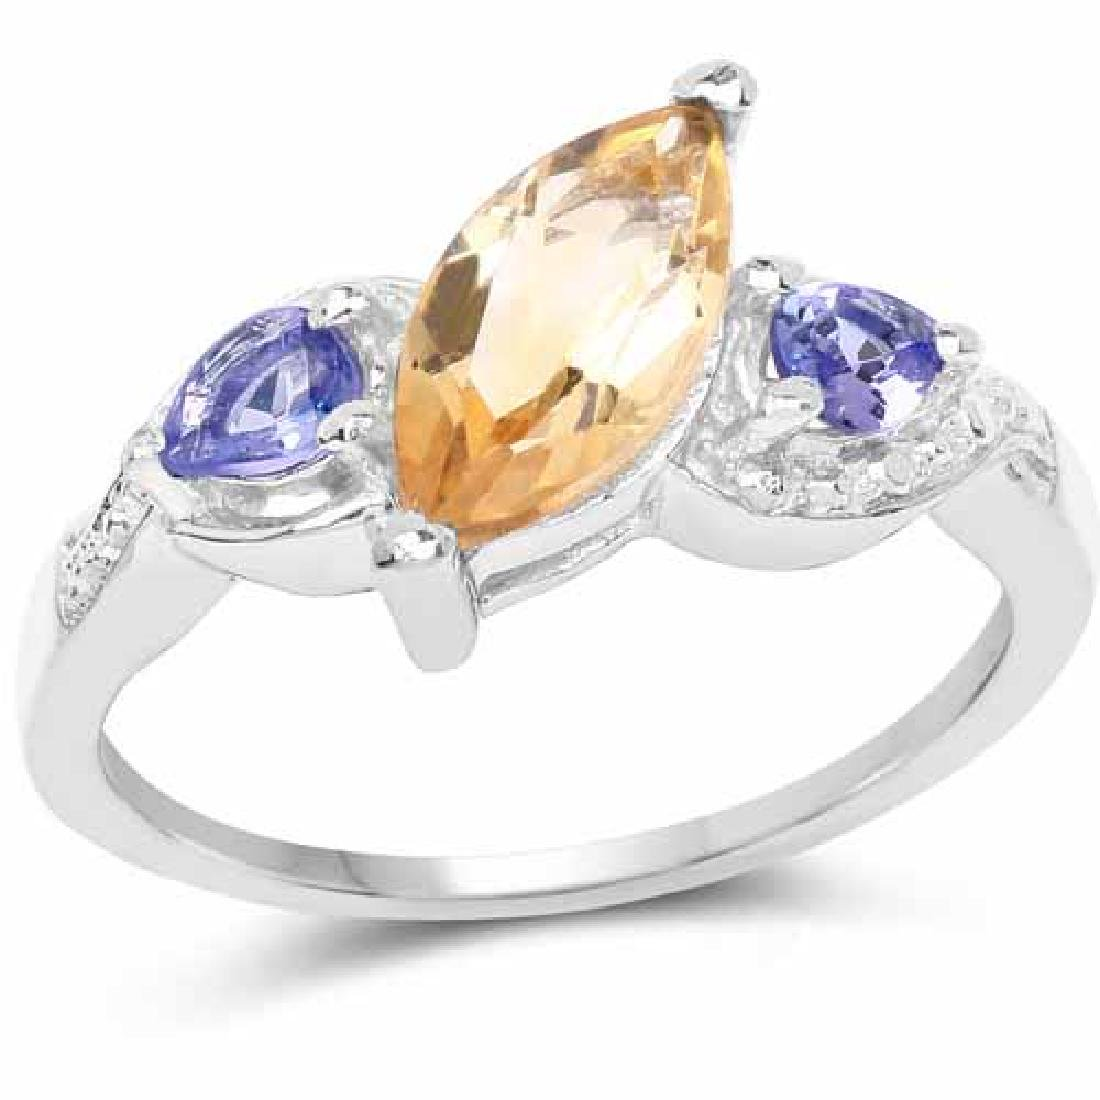 1.28 Carat Genuine Citrine and Tanzanite .925 Sterling